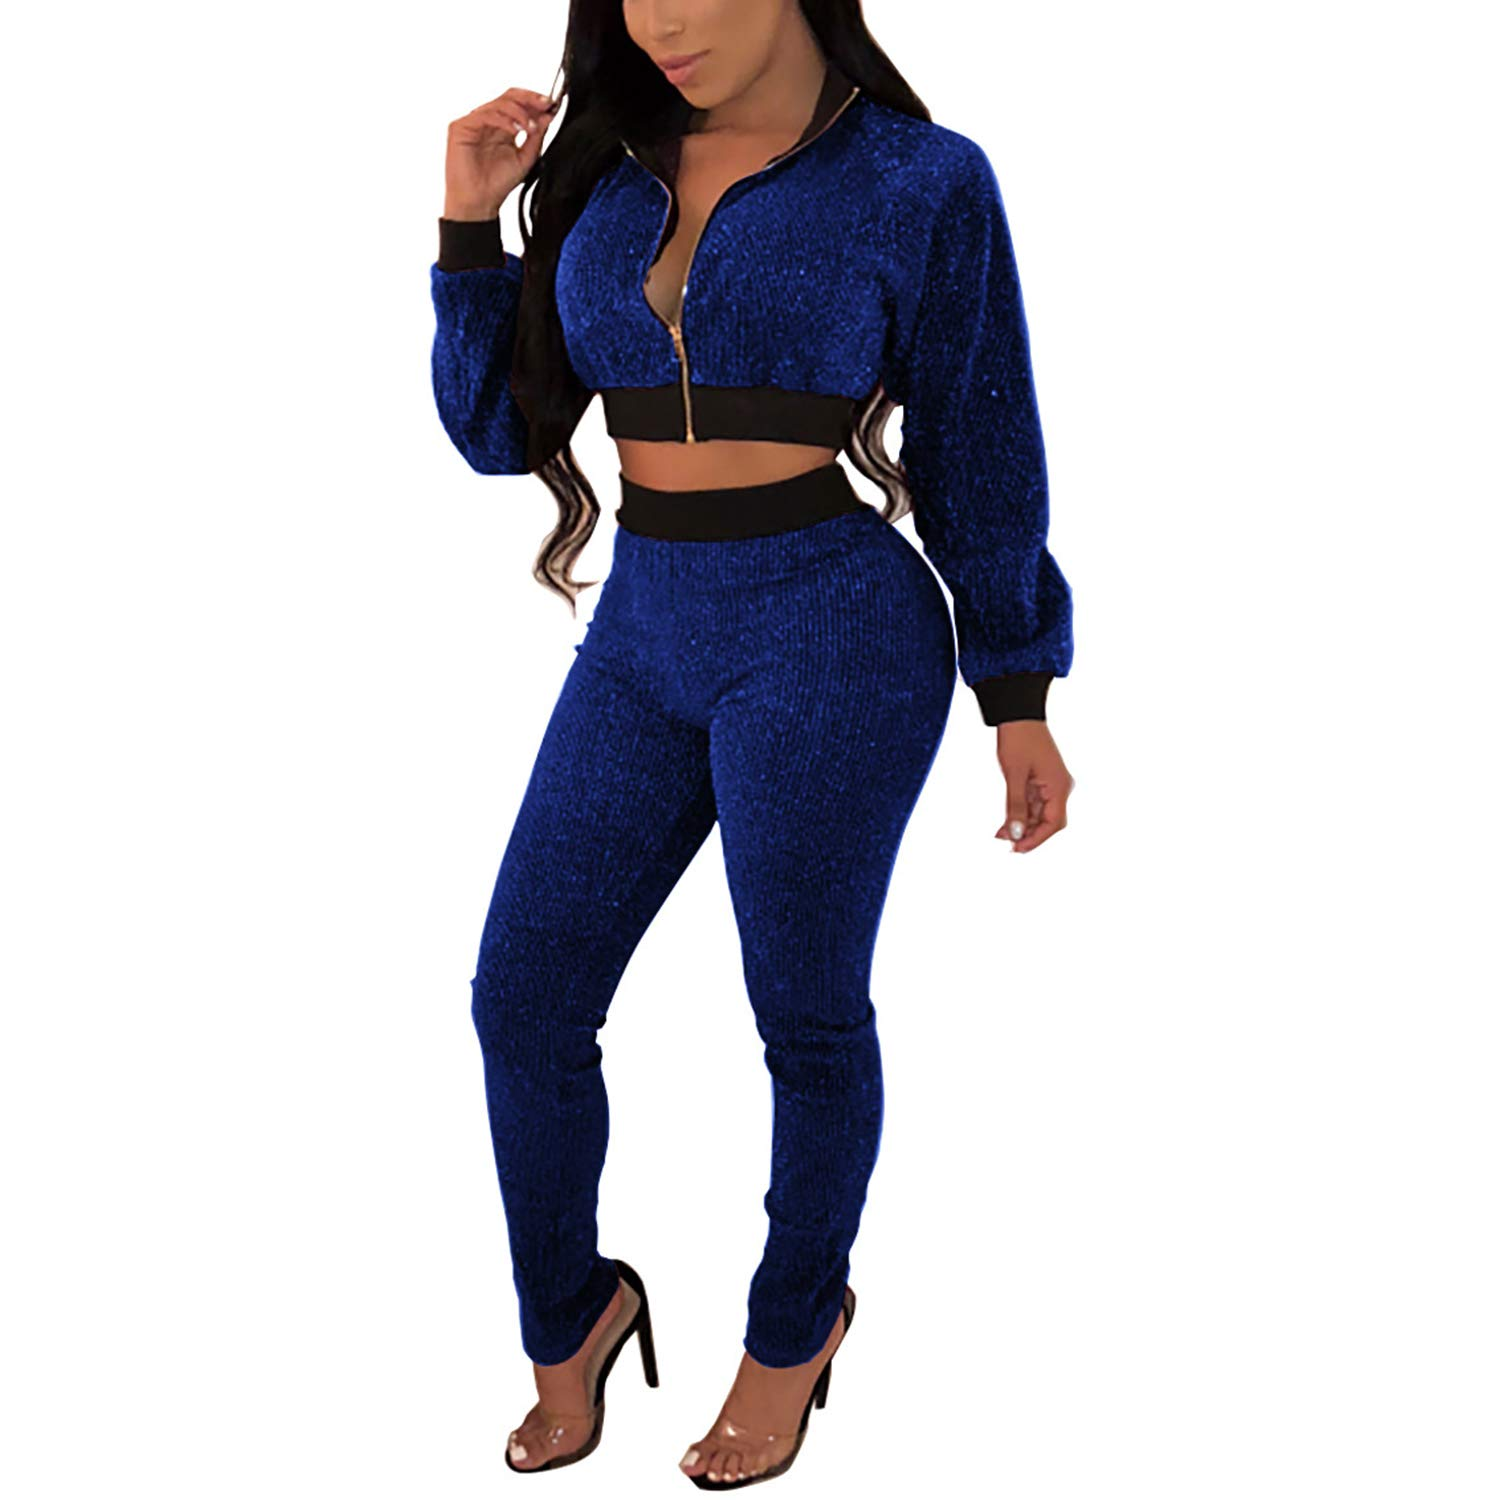 Bodycon Club Outfits Sequins Crop Top Zipper Jackets Long Pants Sweatsuit Blue L by Sherro